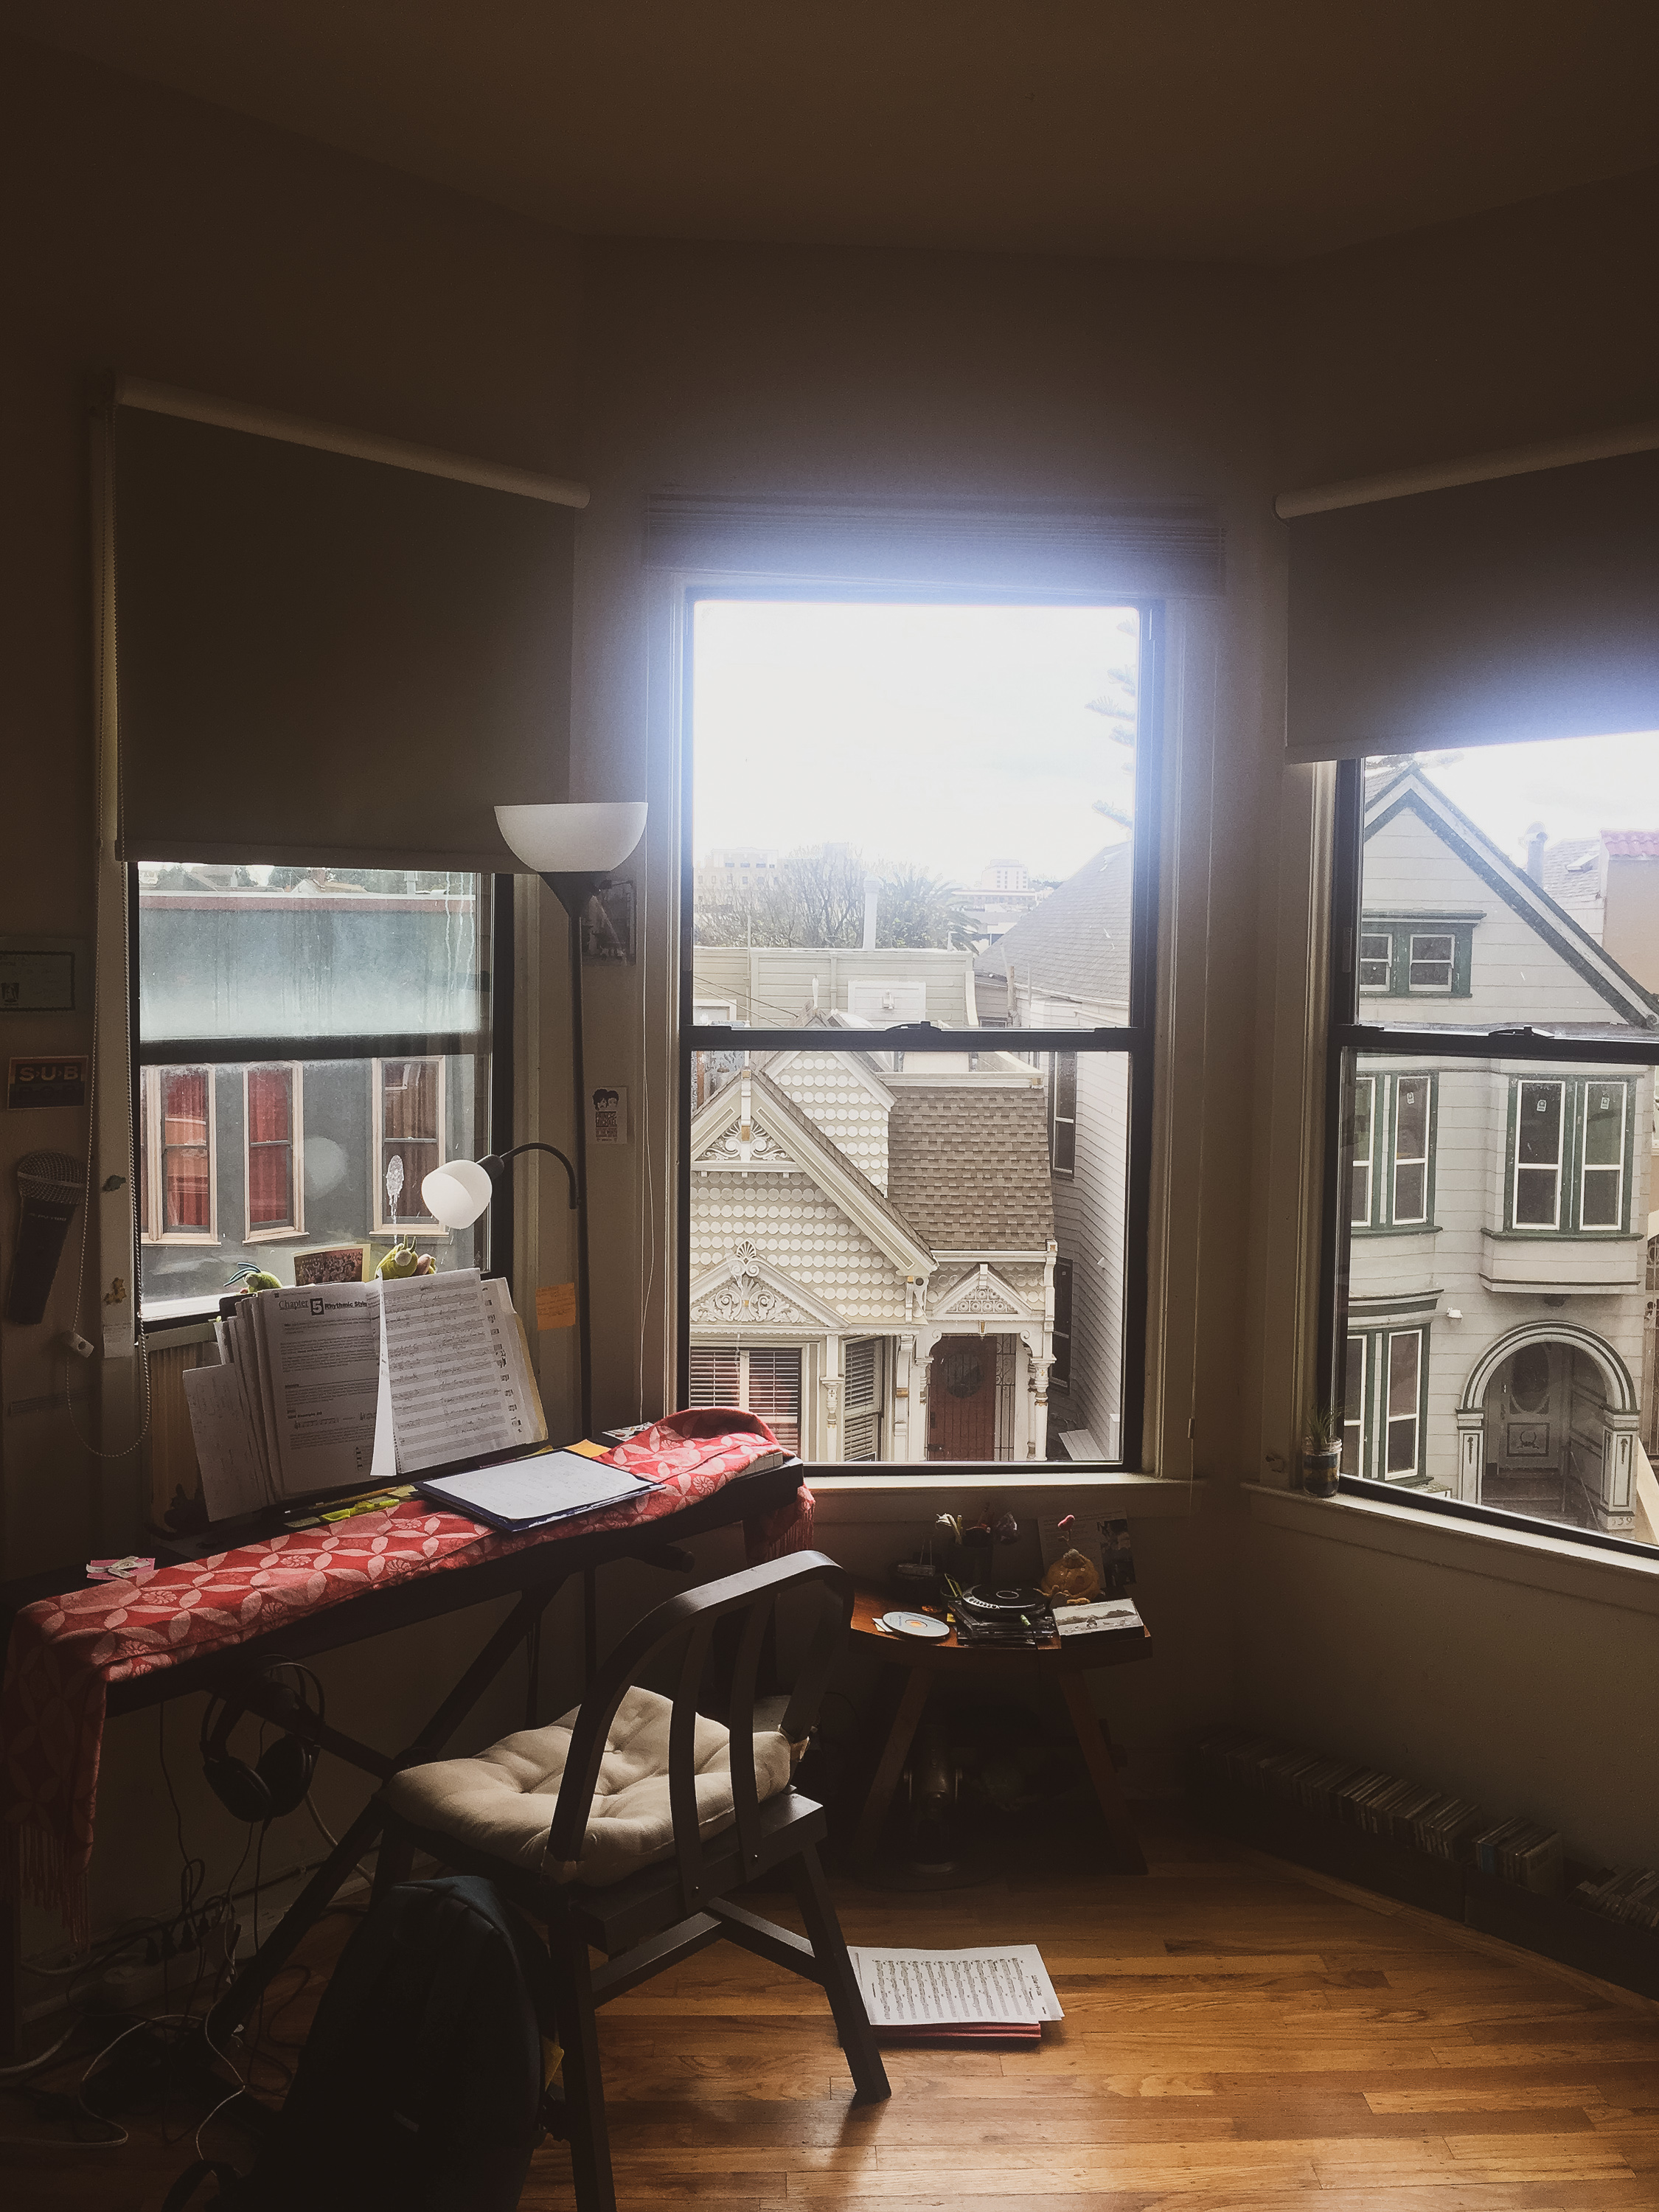 Noe Levy's living room and practice space